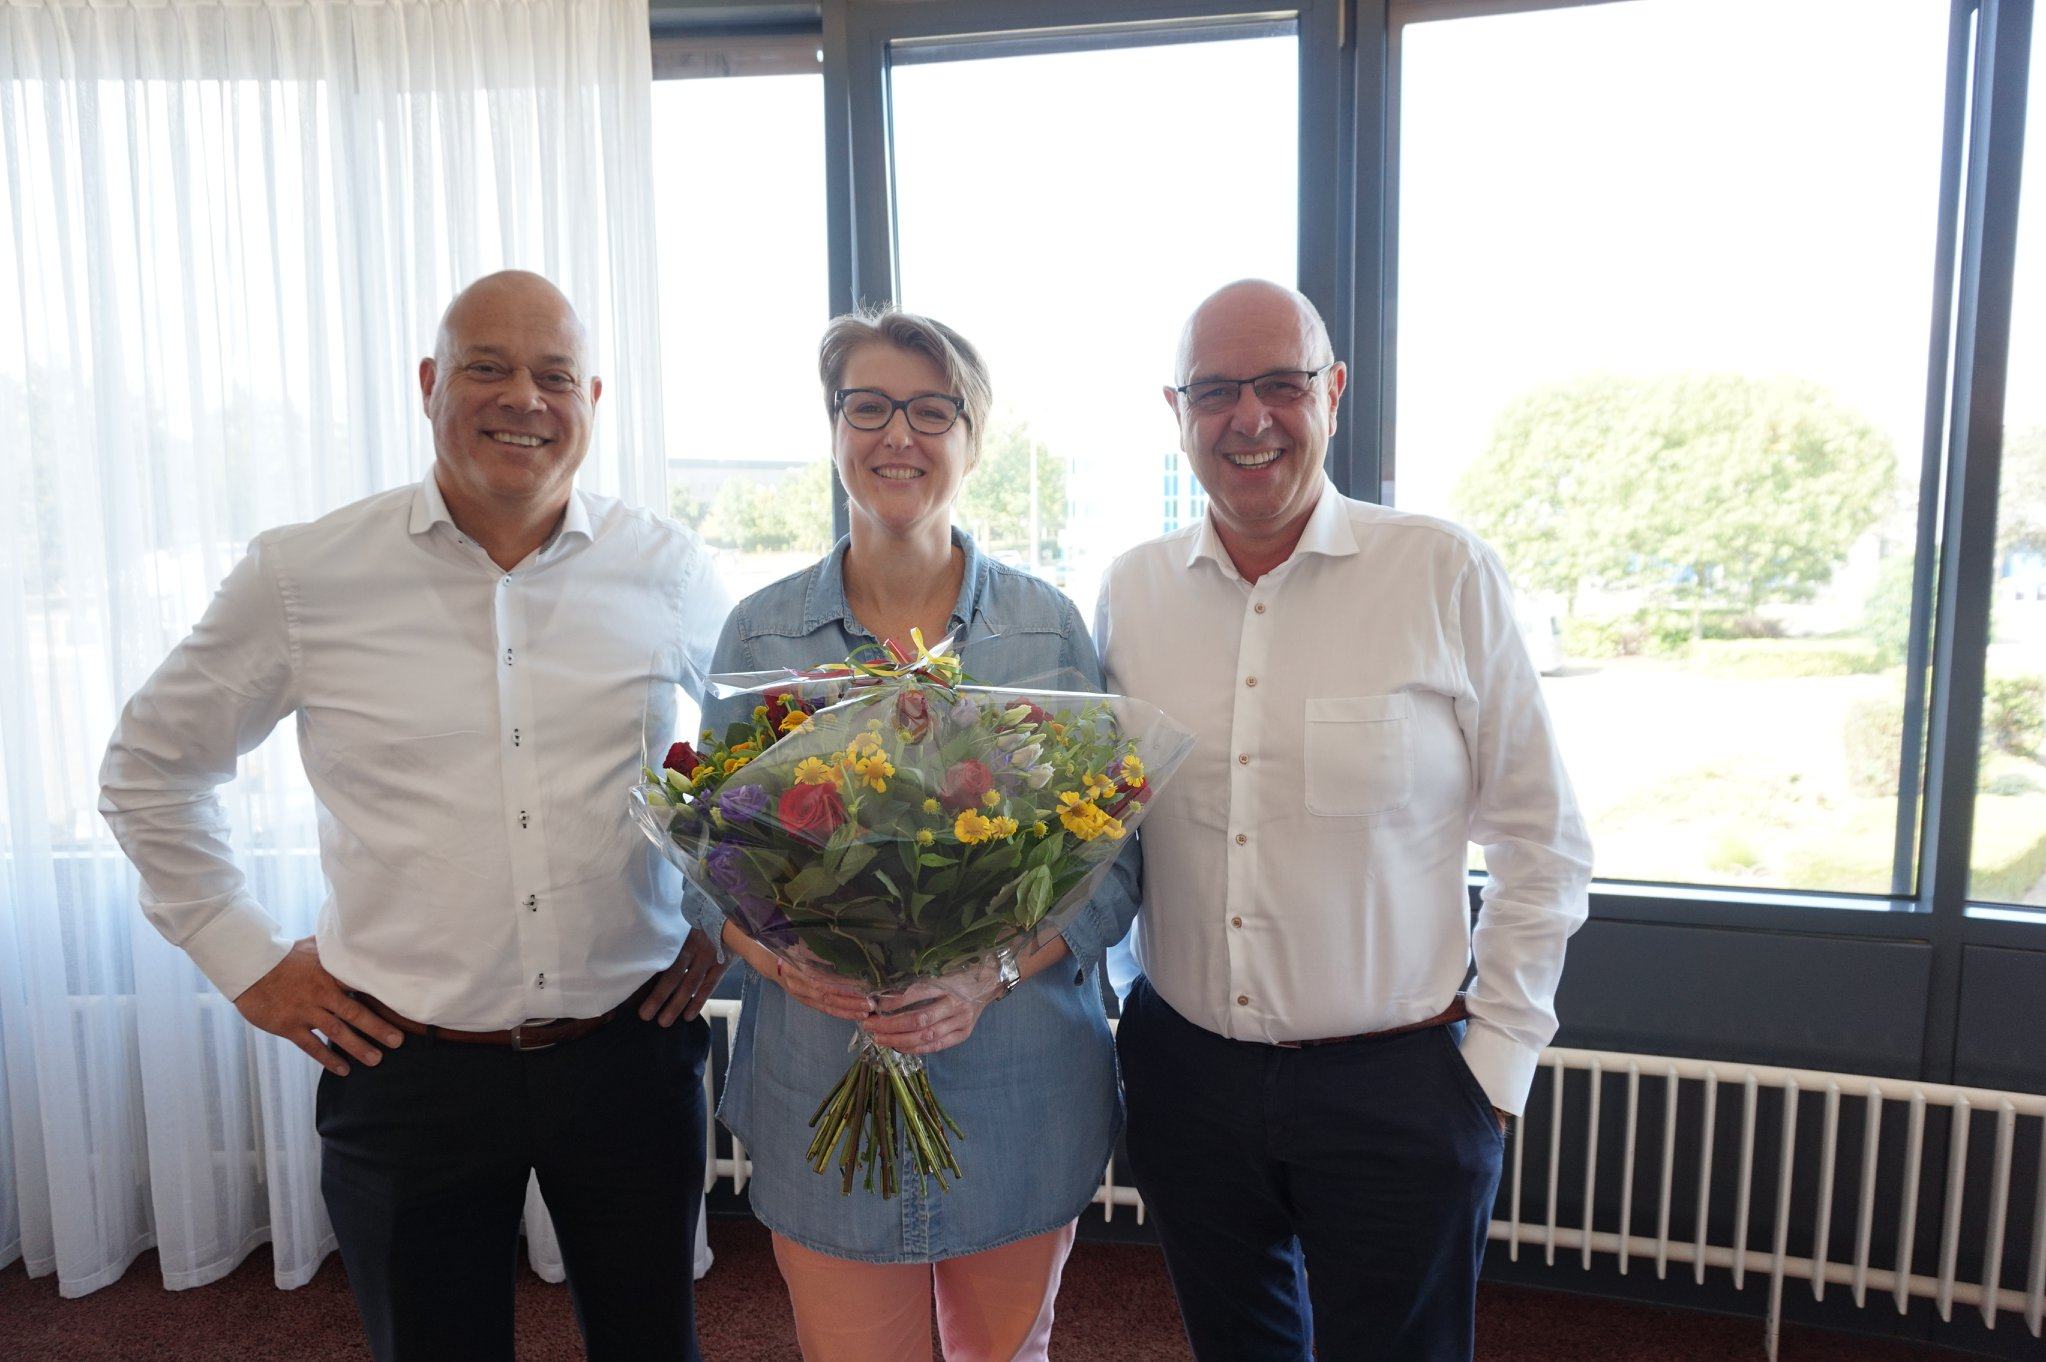 KLG-Onze-collega-Chantal-Piepers-is-12-5-jaar-in-dienst